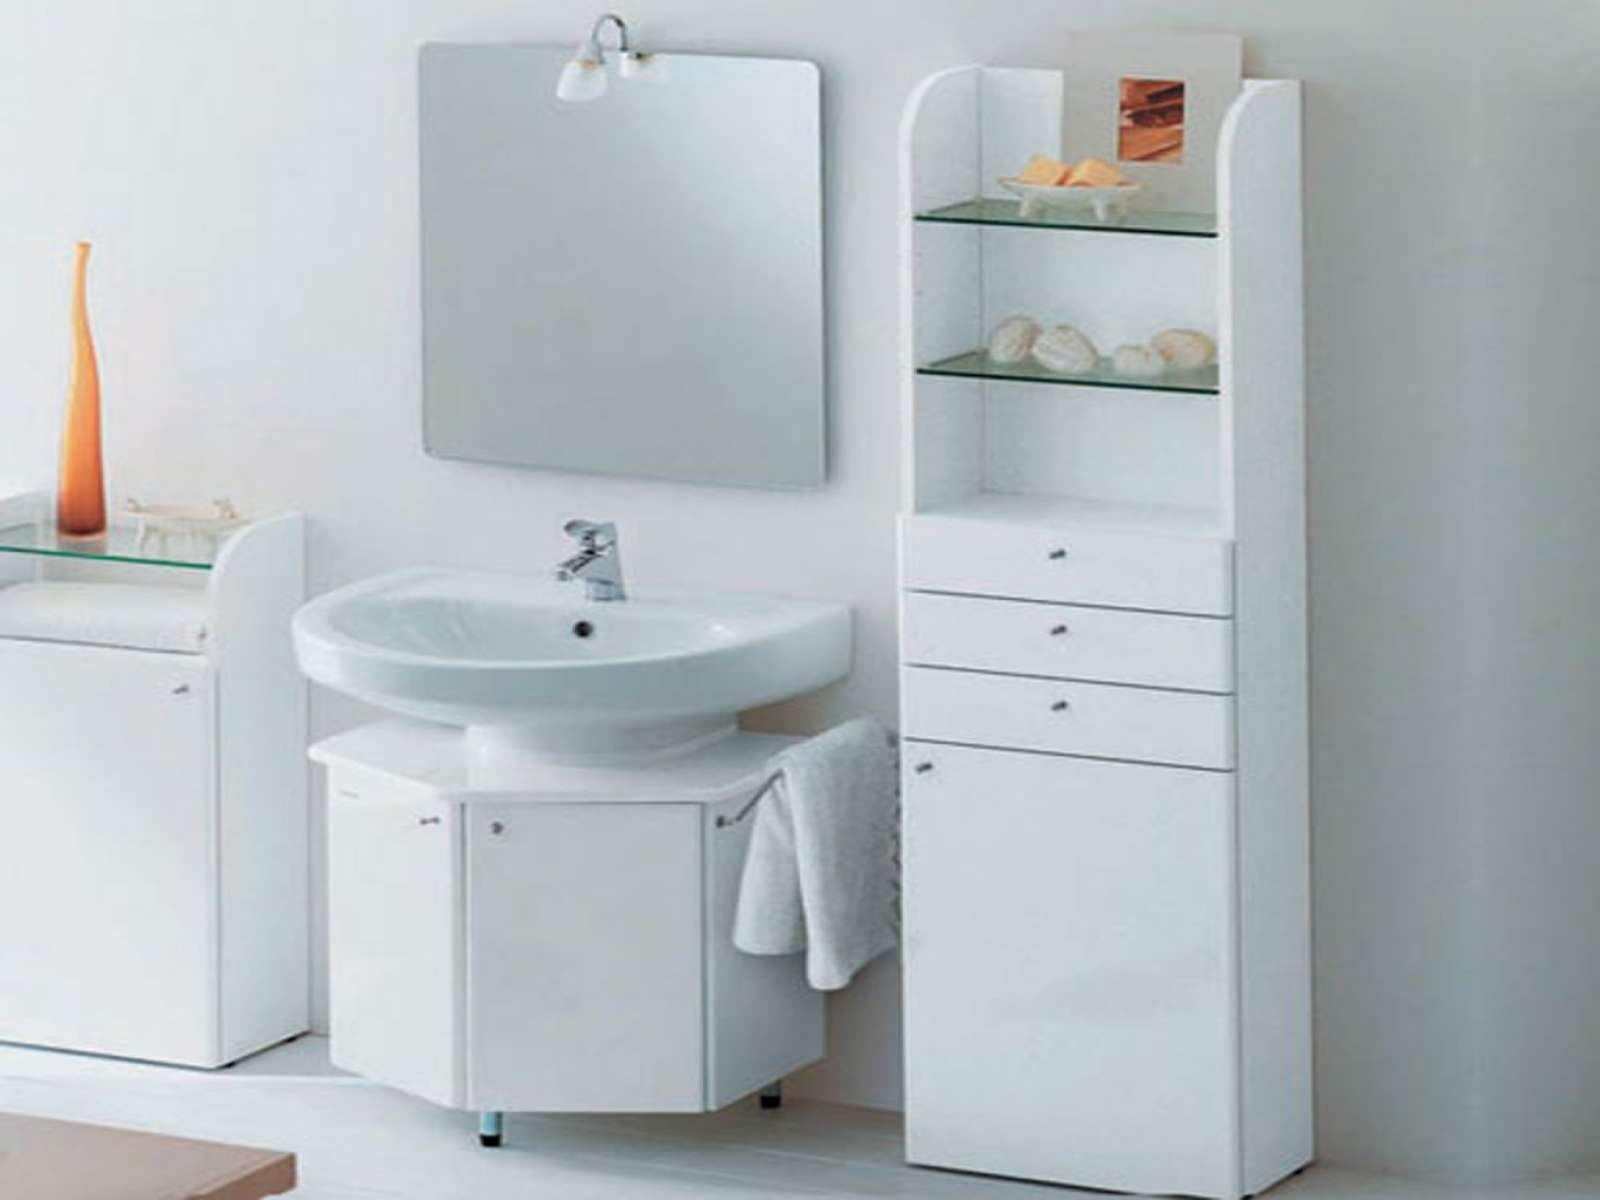 Also Minimalist Bathroom Storage Cabinets